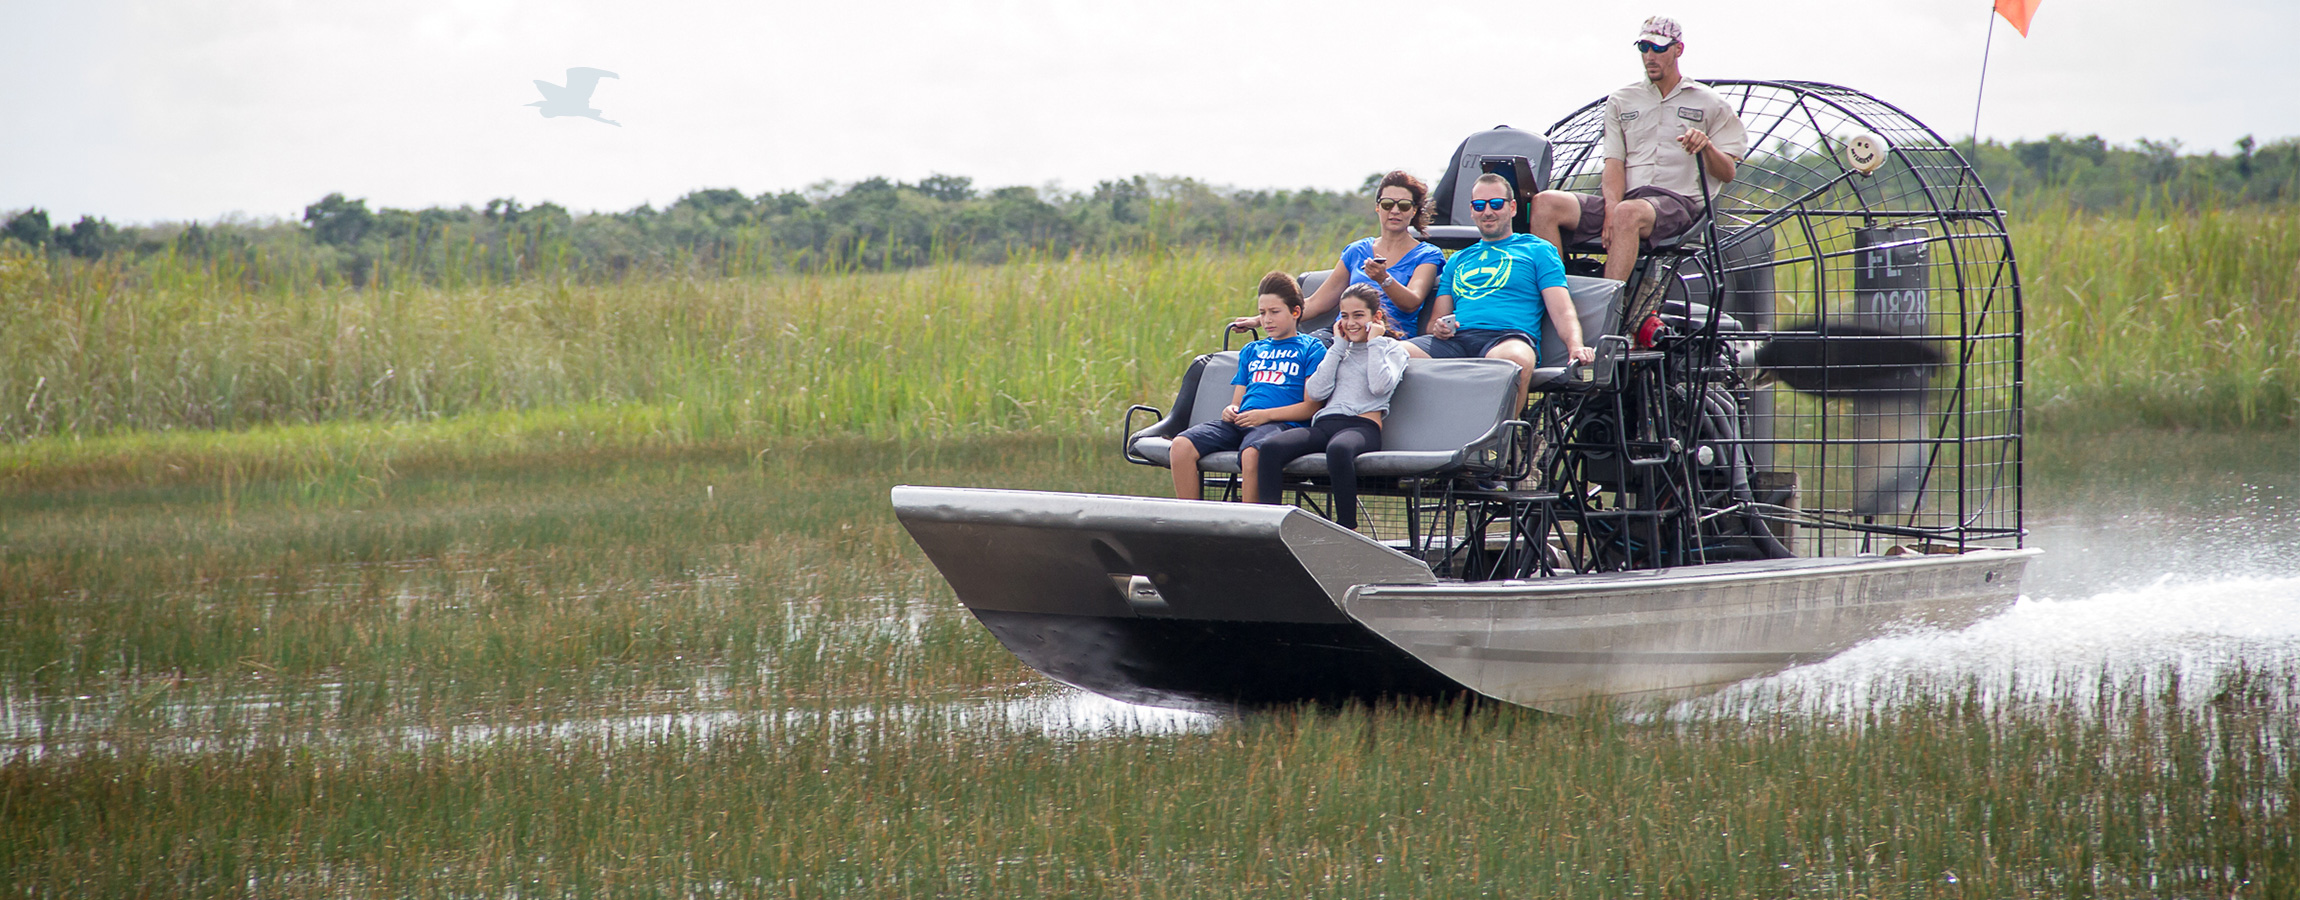 Florida Airboat Rides at Gator Park.